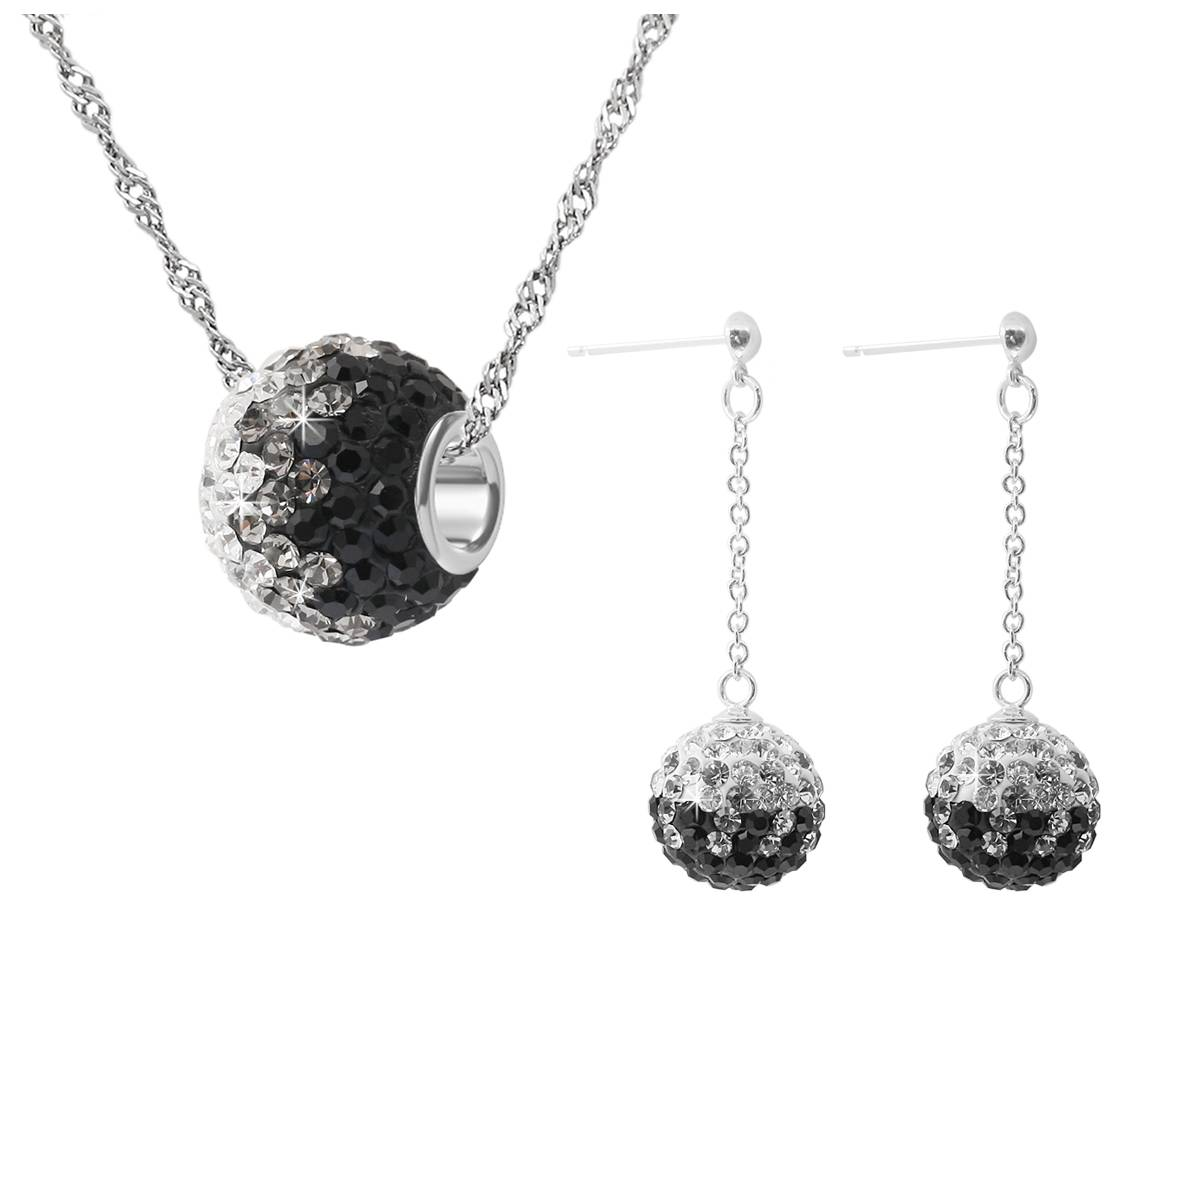 Elegant crystal jewelry set